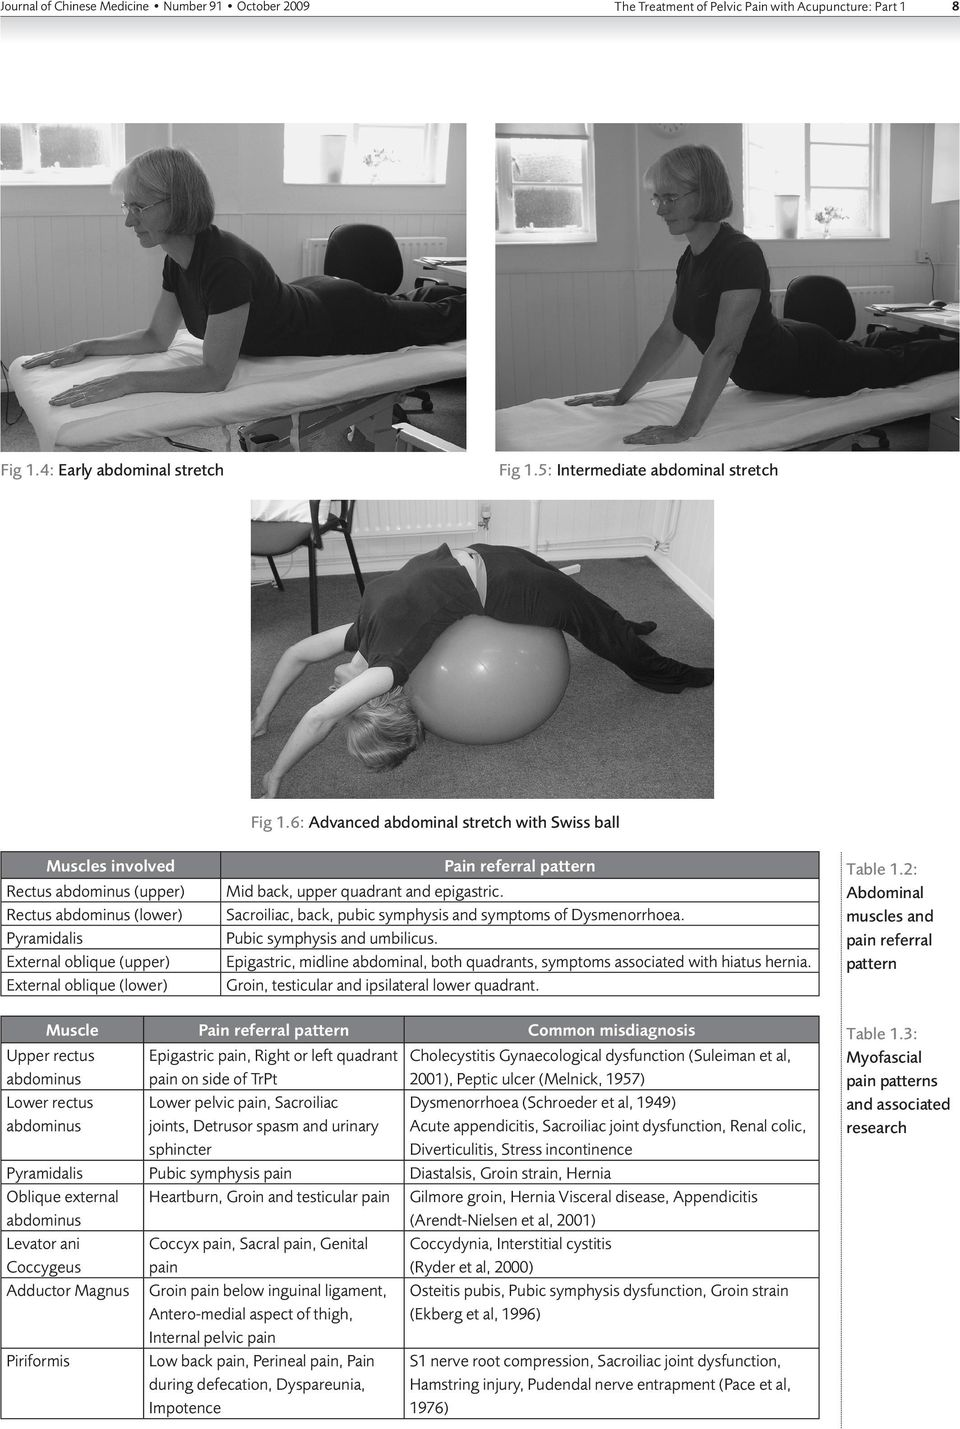 6: Advanced abdominal stretch with Swiss ball Pain referral pattern Mid back, upper quadrant and epigastric. Sacroiliac, back, pubic symphysis and symptoms of Dysmenorrhoea.